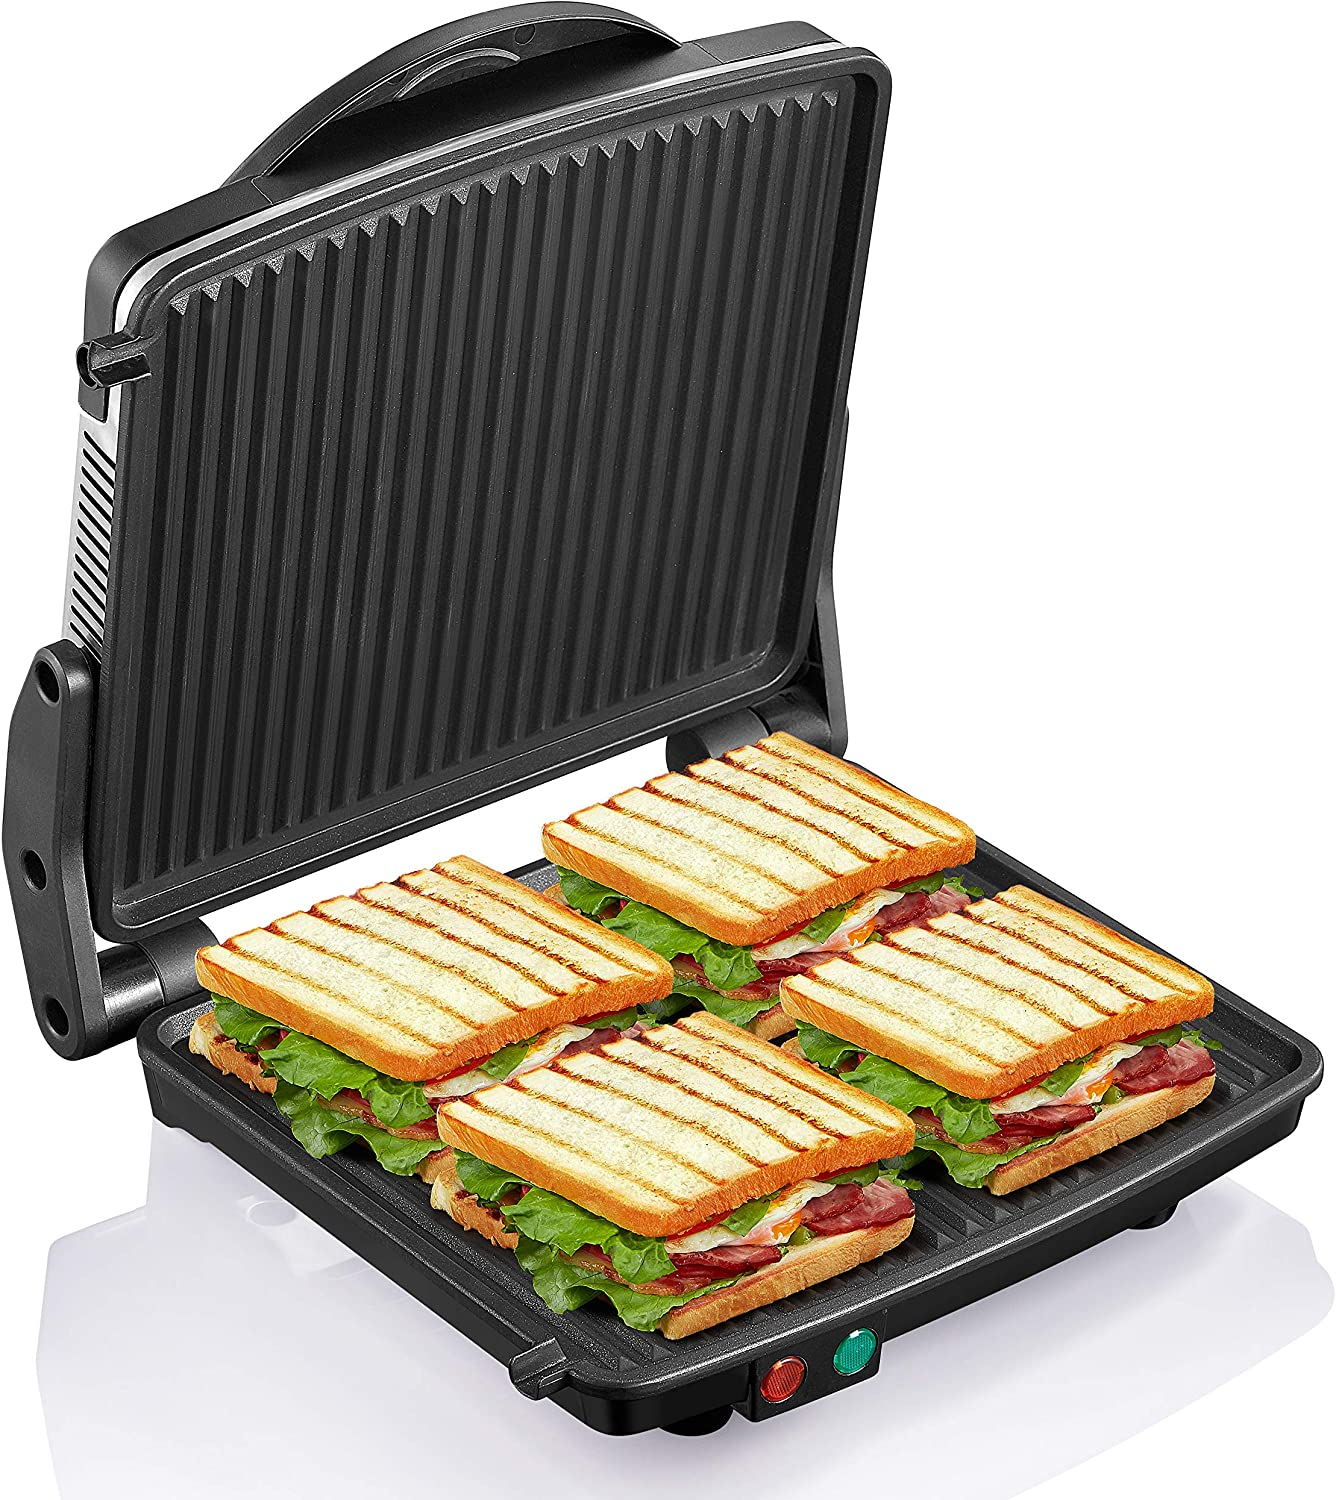 Amazon Com Panini Press Grill Yabano Gourmet Sandwich Maker Non Stick Coated Plates 11 X 9 8 Opens 180 Degrees To Fit Any Type Or Size Of Food Stainless Steel Surface And Removable Drip Tray